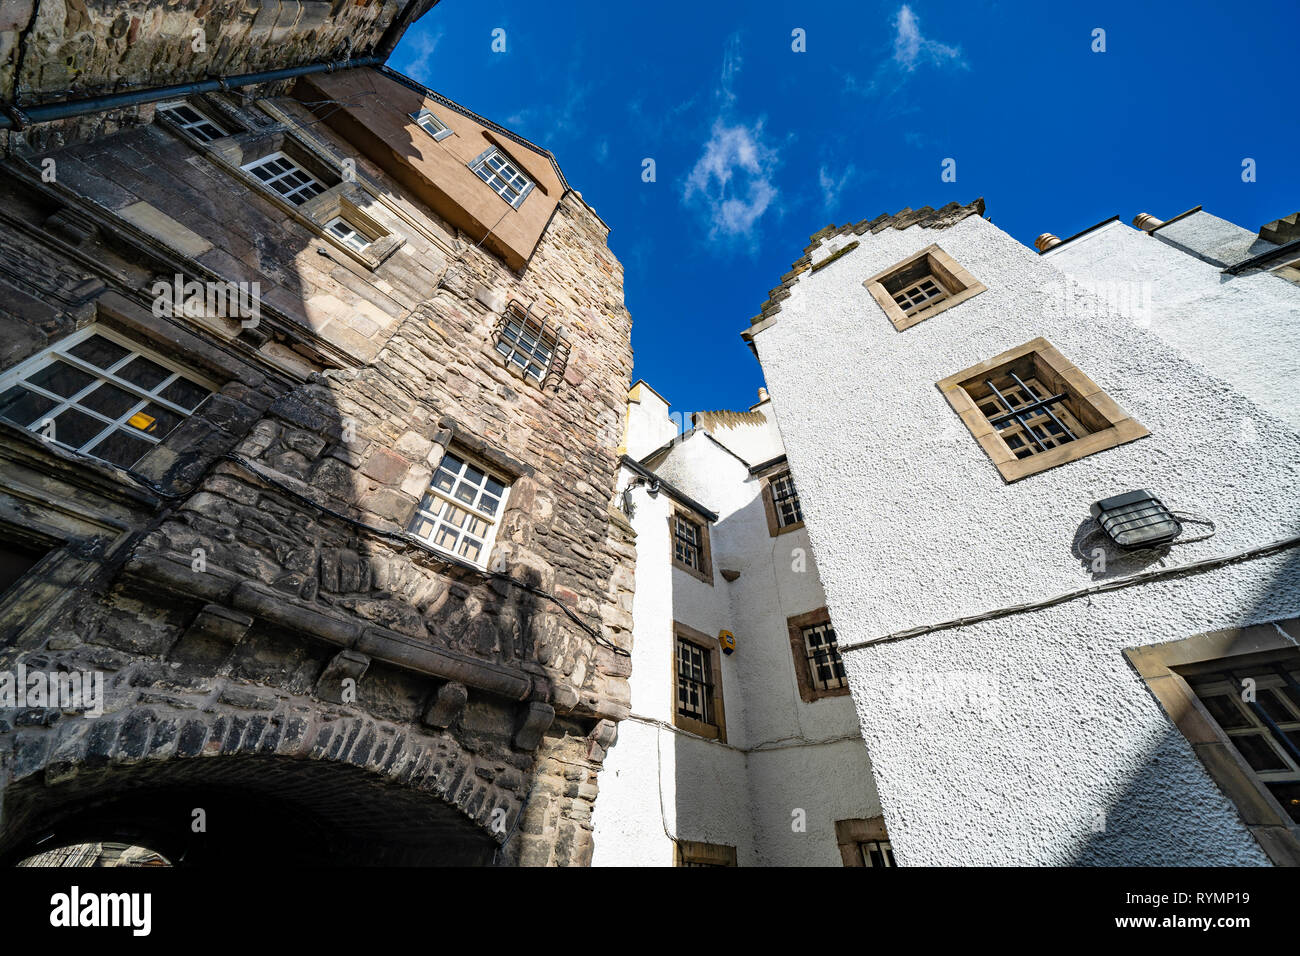 View of Bakehouse Close on Royal Mile in Edinburgh, Scotland UK. Location of Outlander as fictional Carfax Close. Scotland ,UK - Stock Image